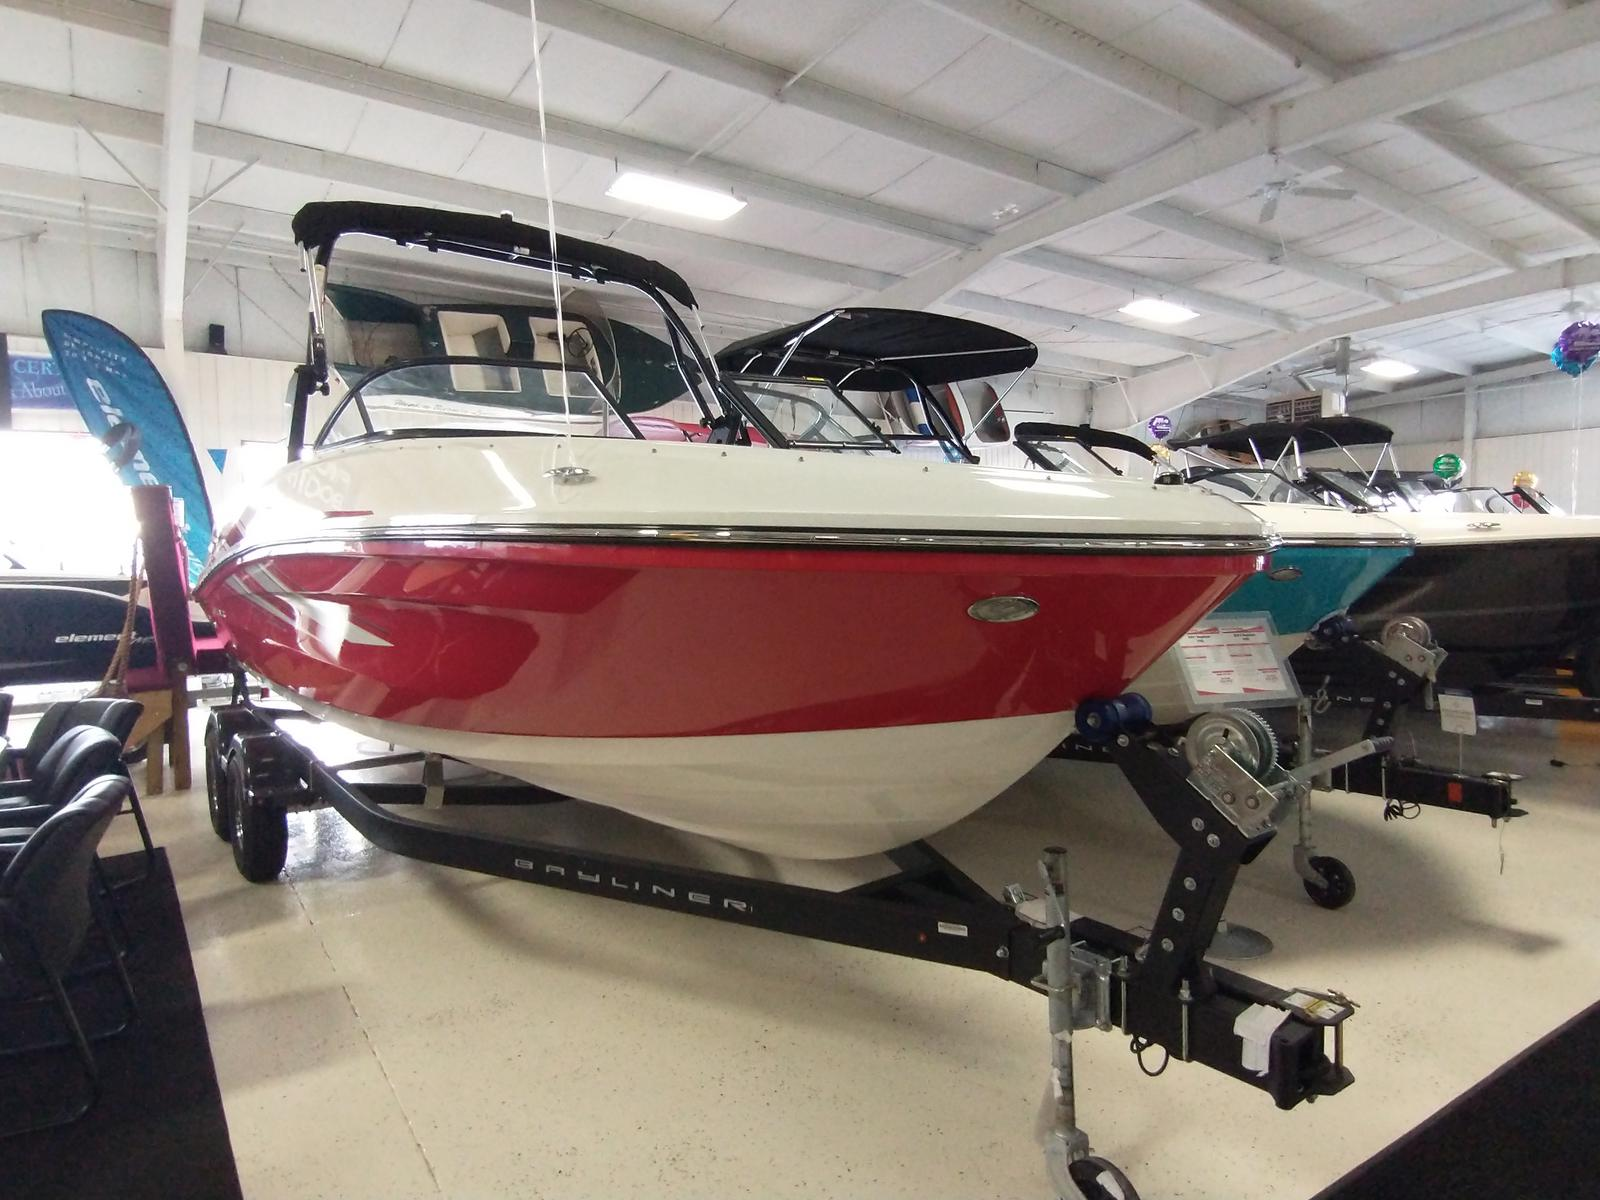 2021 Bayliner boat for sale, model of the boat is VR6 Bowrider & Image # 2 of 10